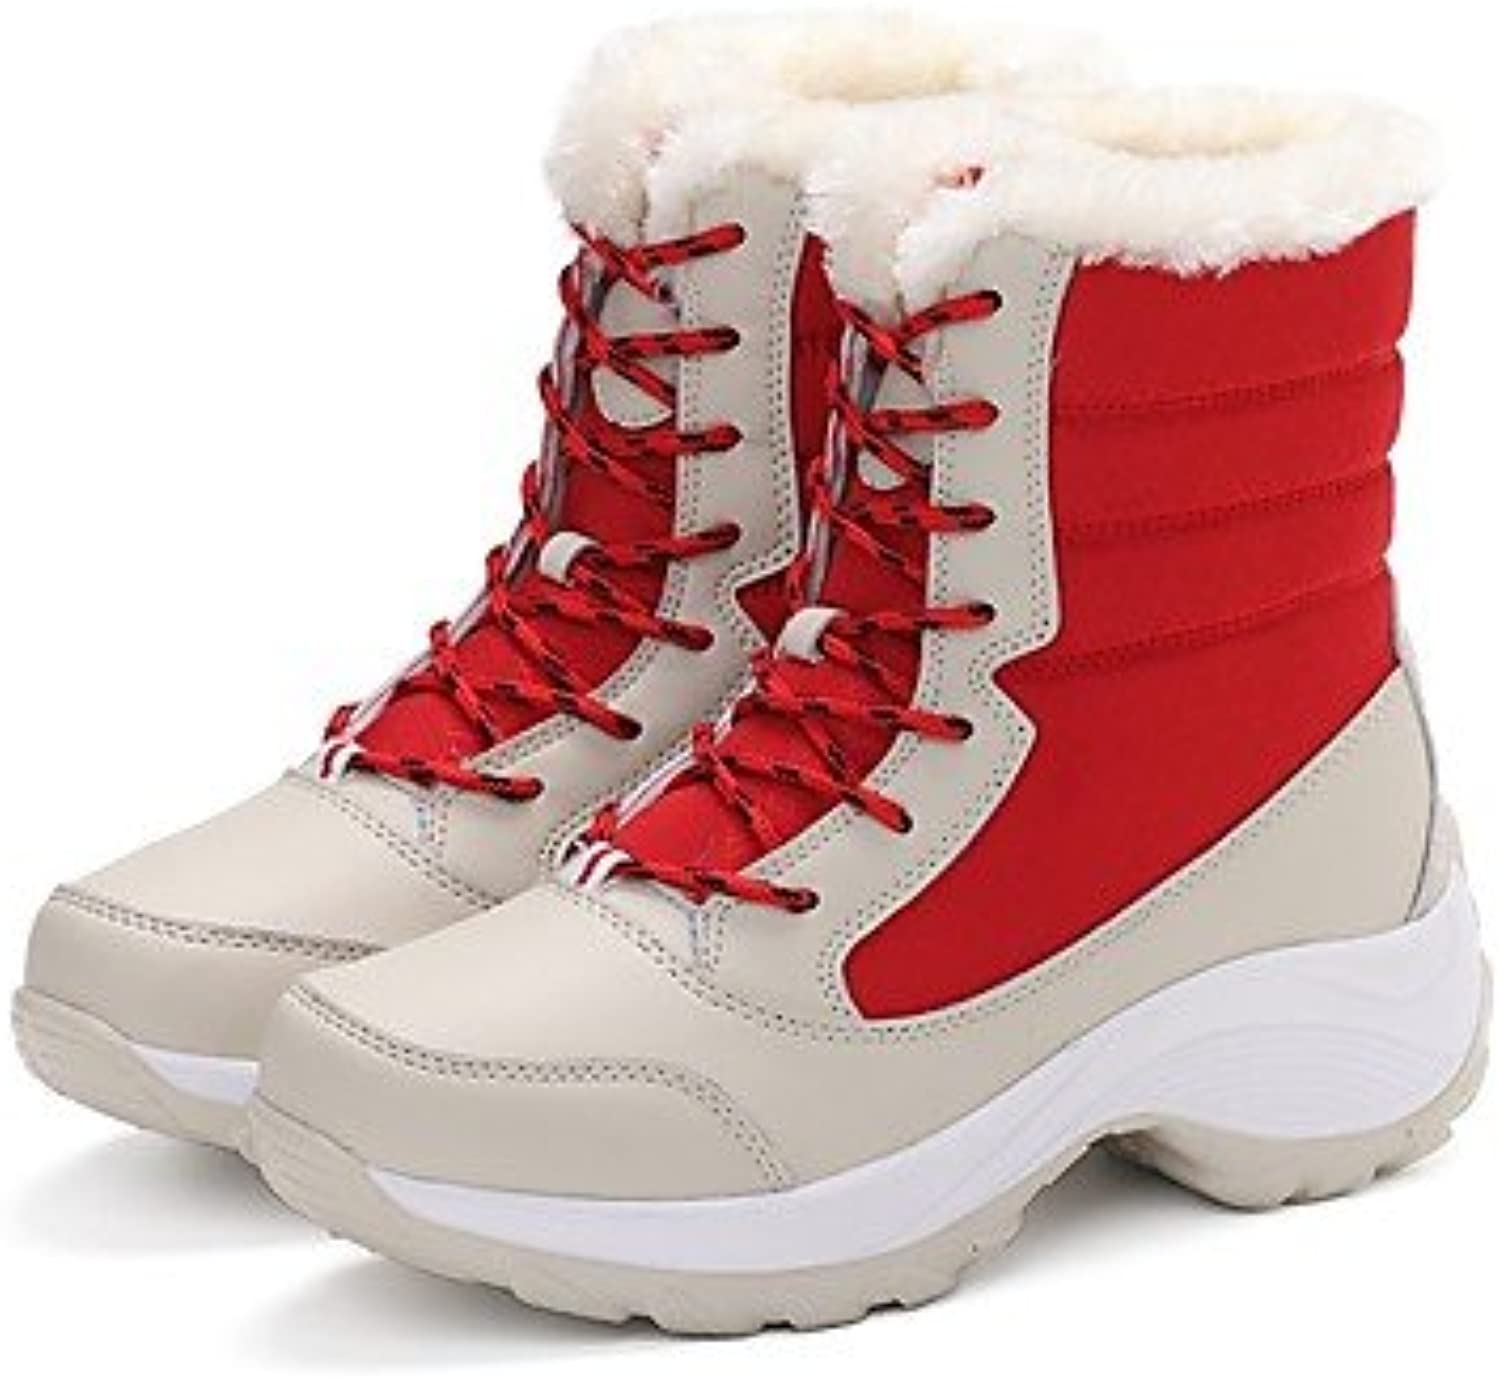 Women shoes PU Winter Snow Flat Heel Round Toe Lace-up for Casual Red Beige Black